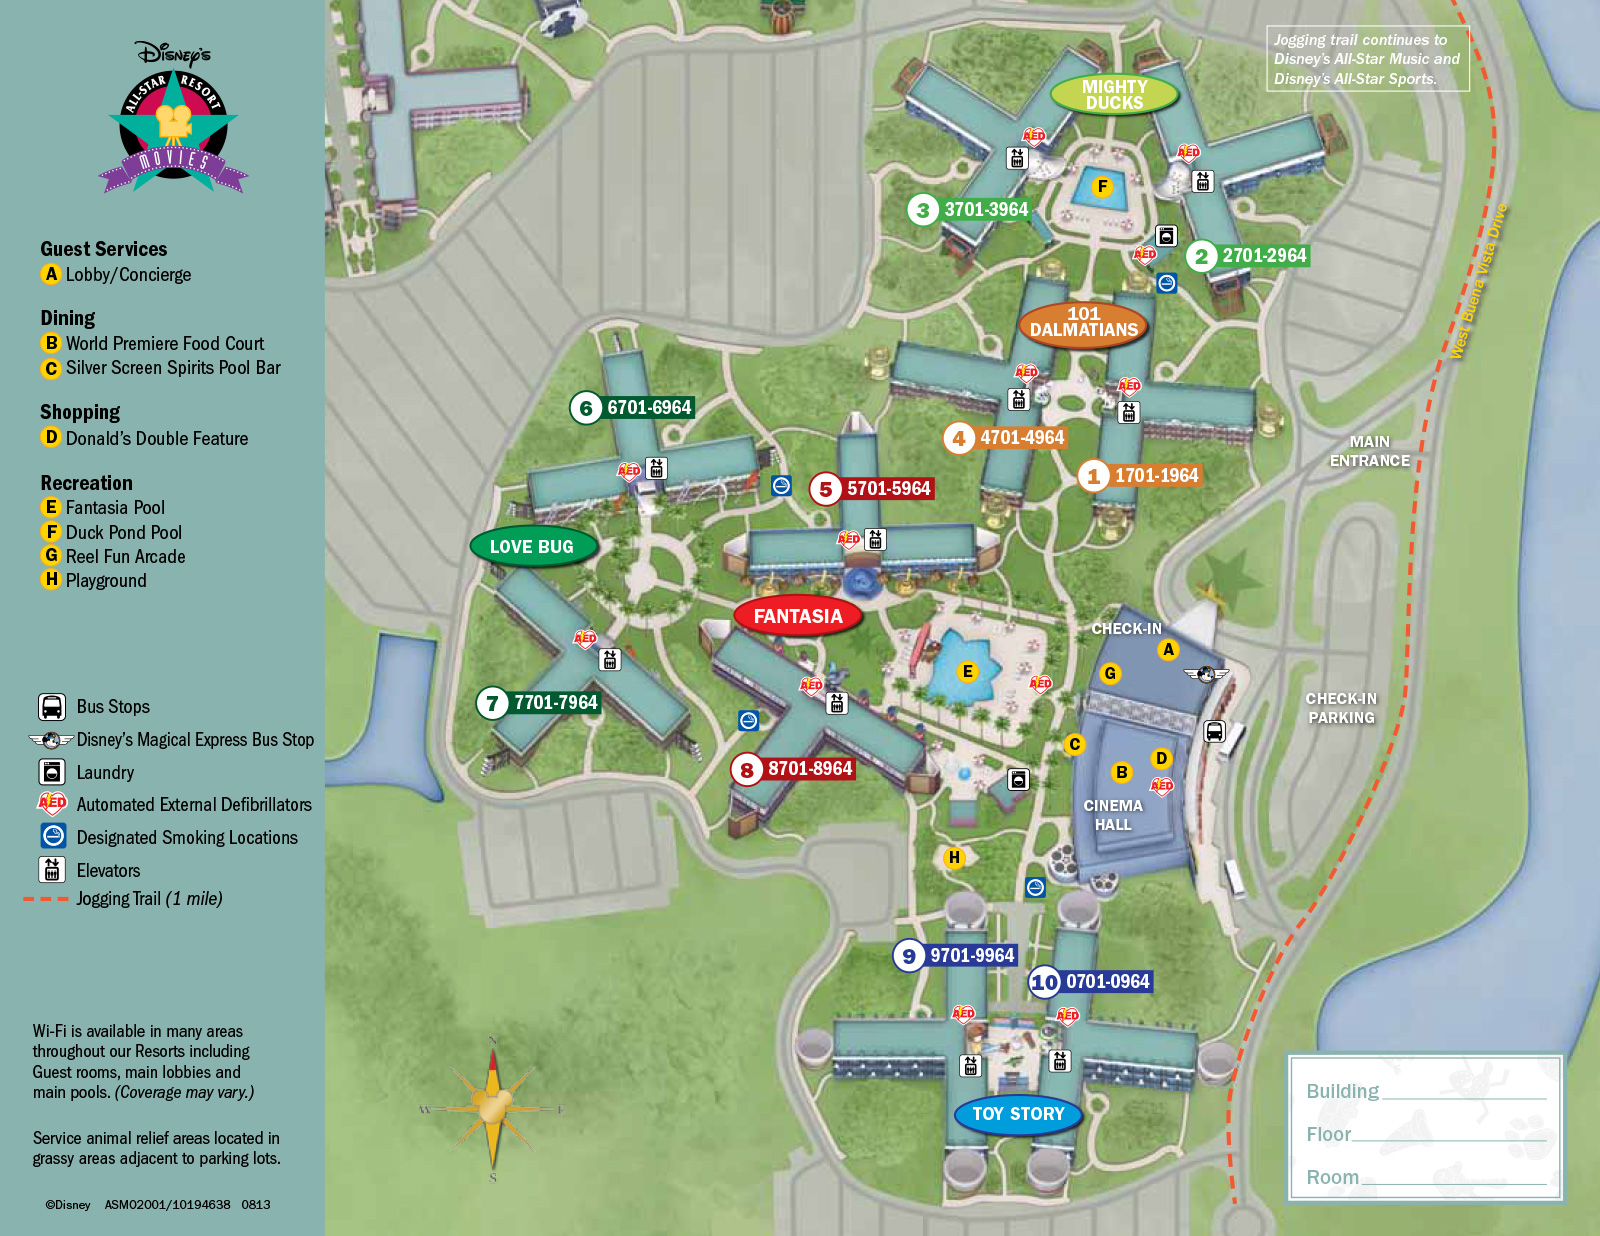 New 2013 All Star Movies Resort map